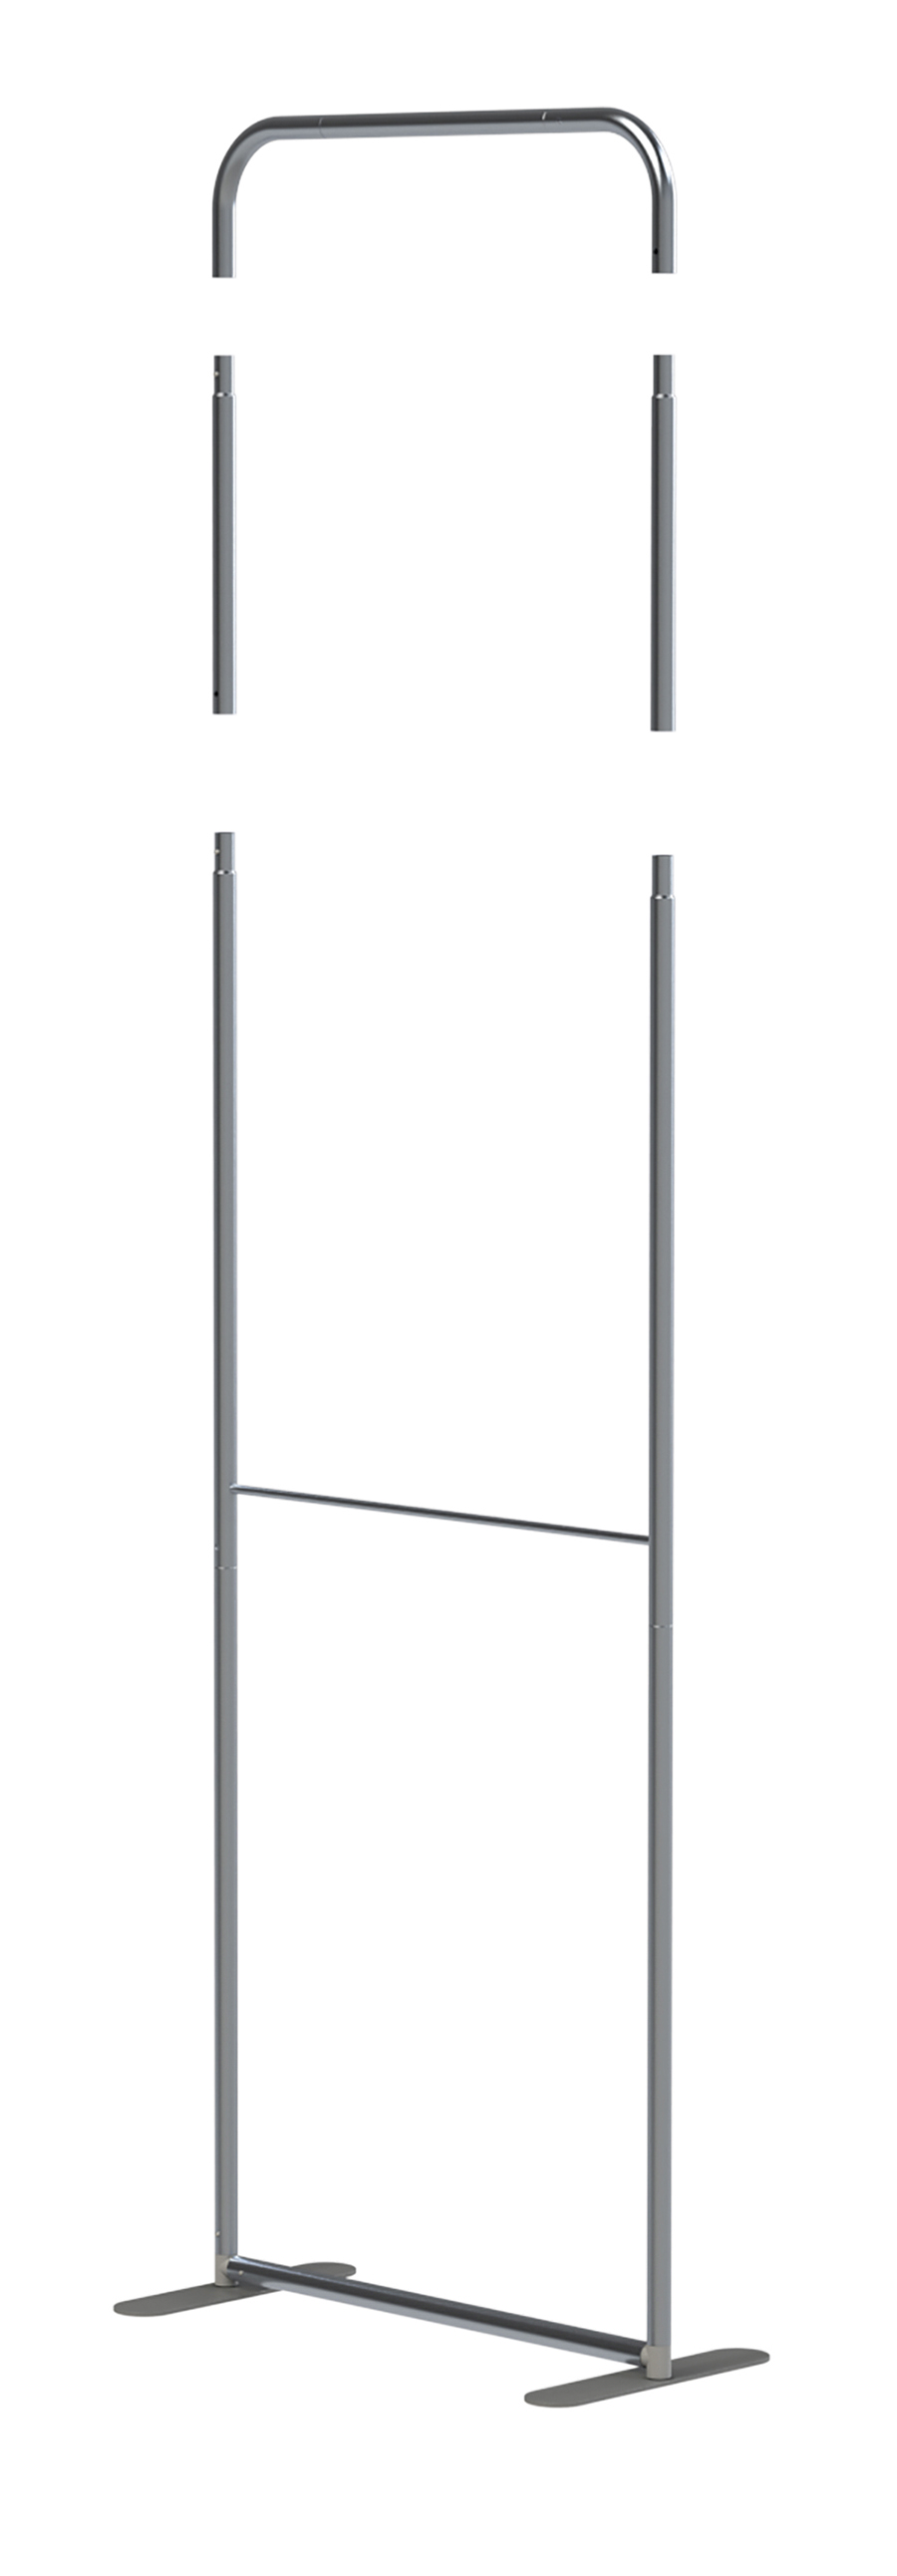 Exhibition Stand Assembly : Modulate™ fabric displays stretch display stands